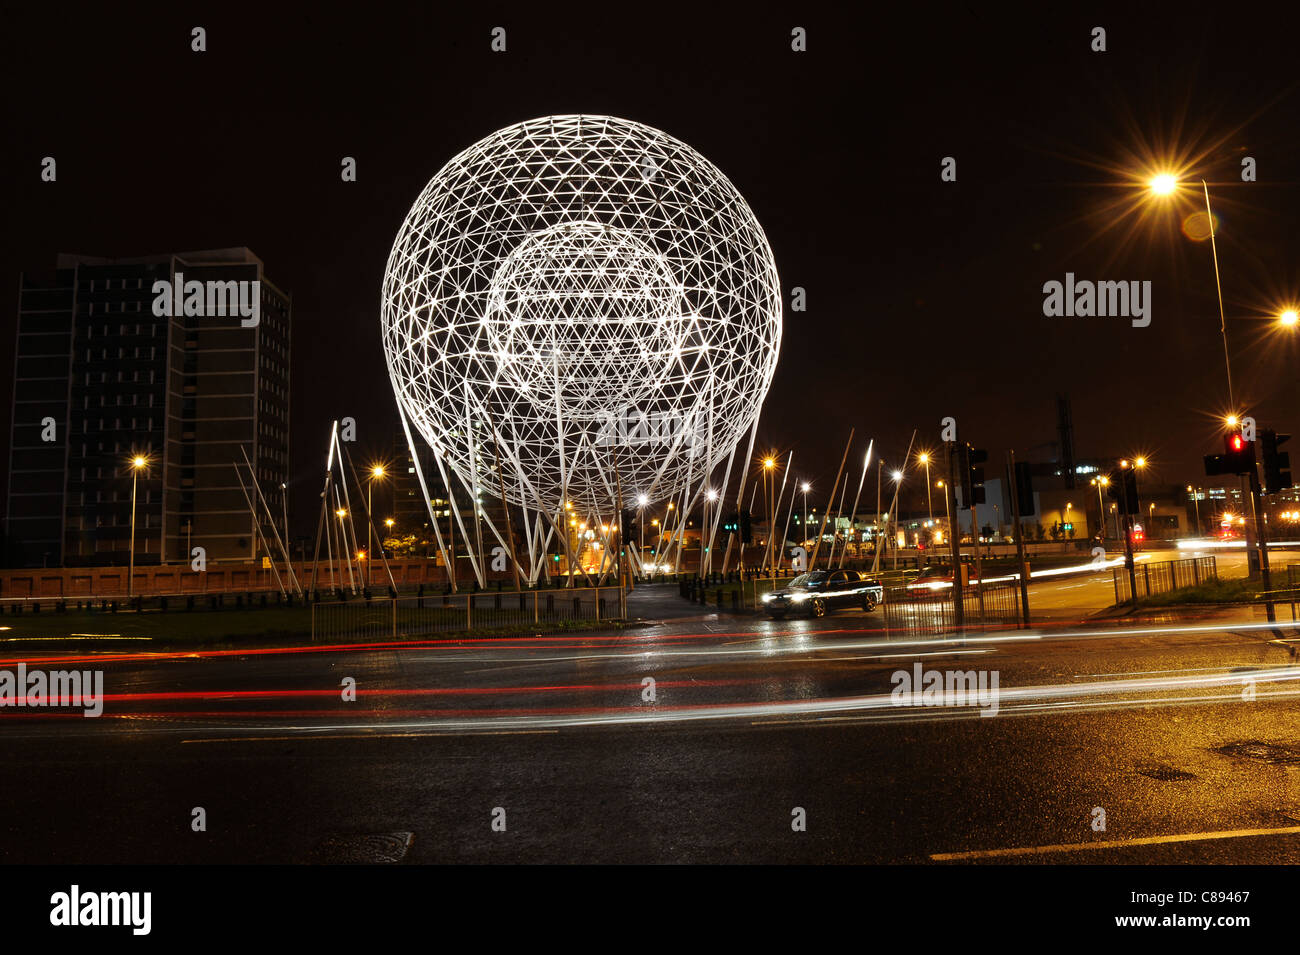 New sculpture in Belfast called 'Rise'. - Stock Image